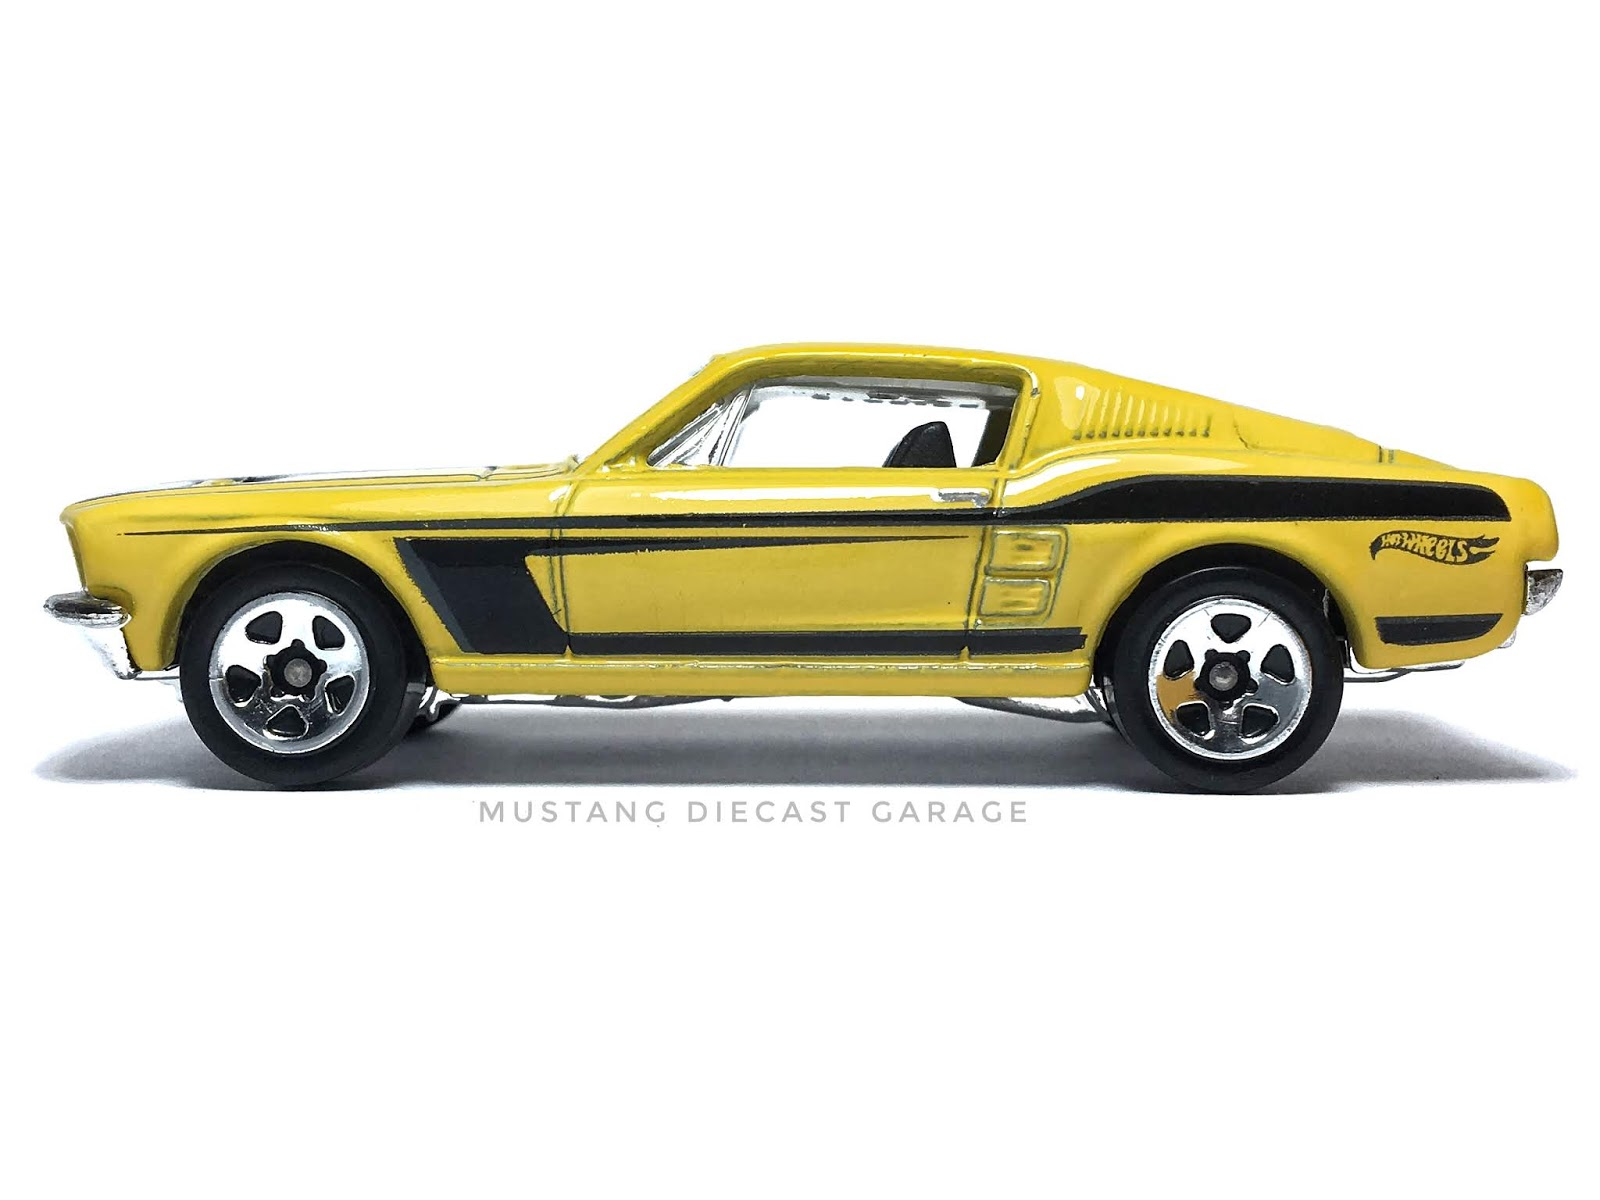 Hot wheels 1967 ford mustang series 2014 mustang 50 year exclusive สีเหลือง 164